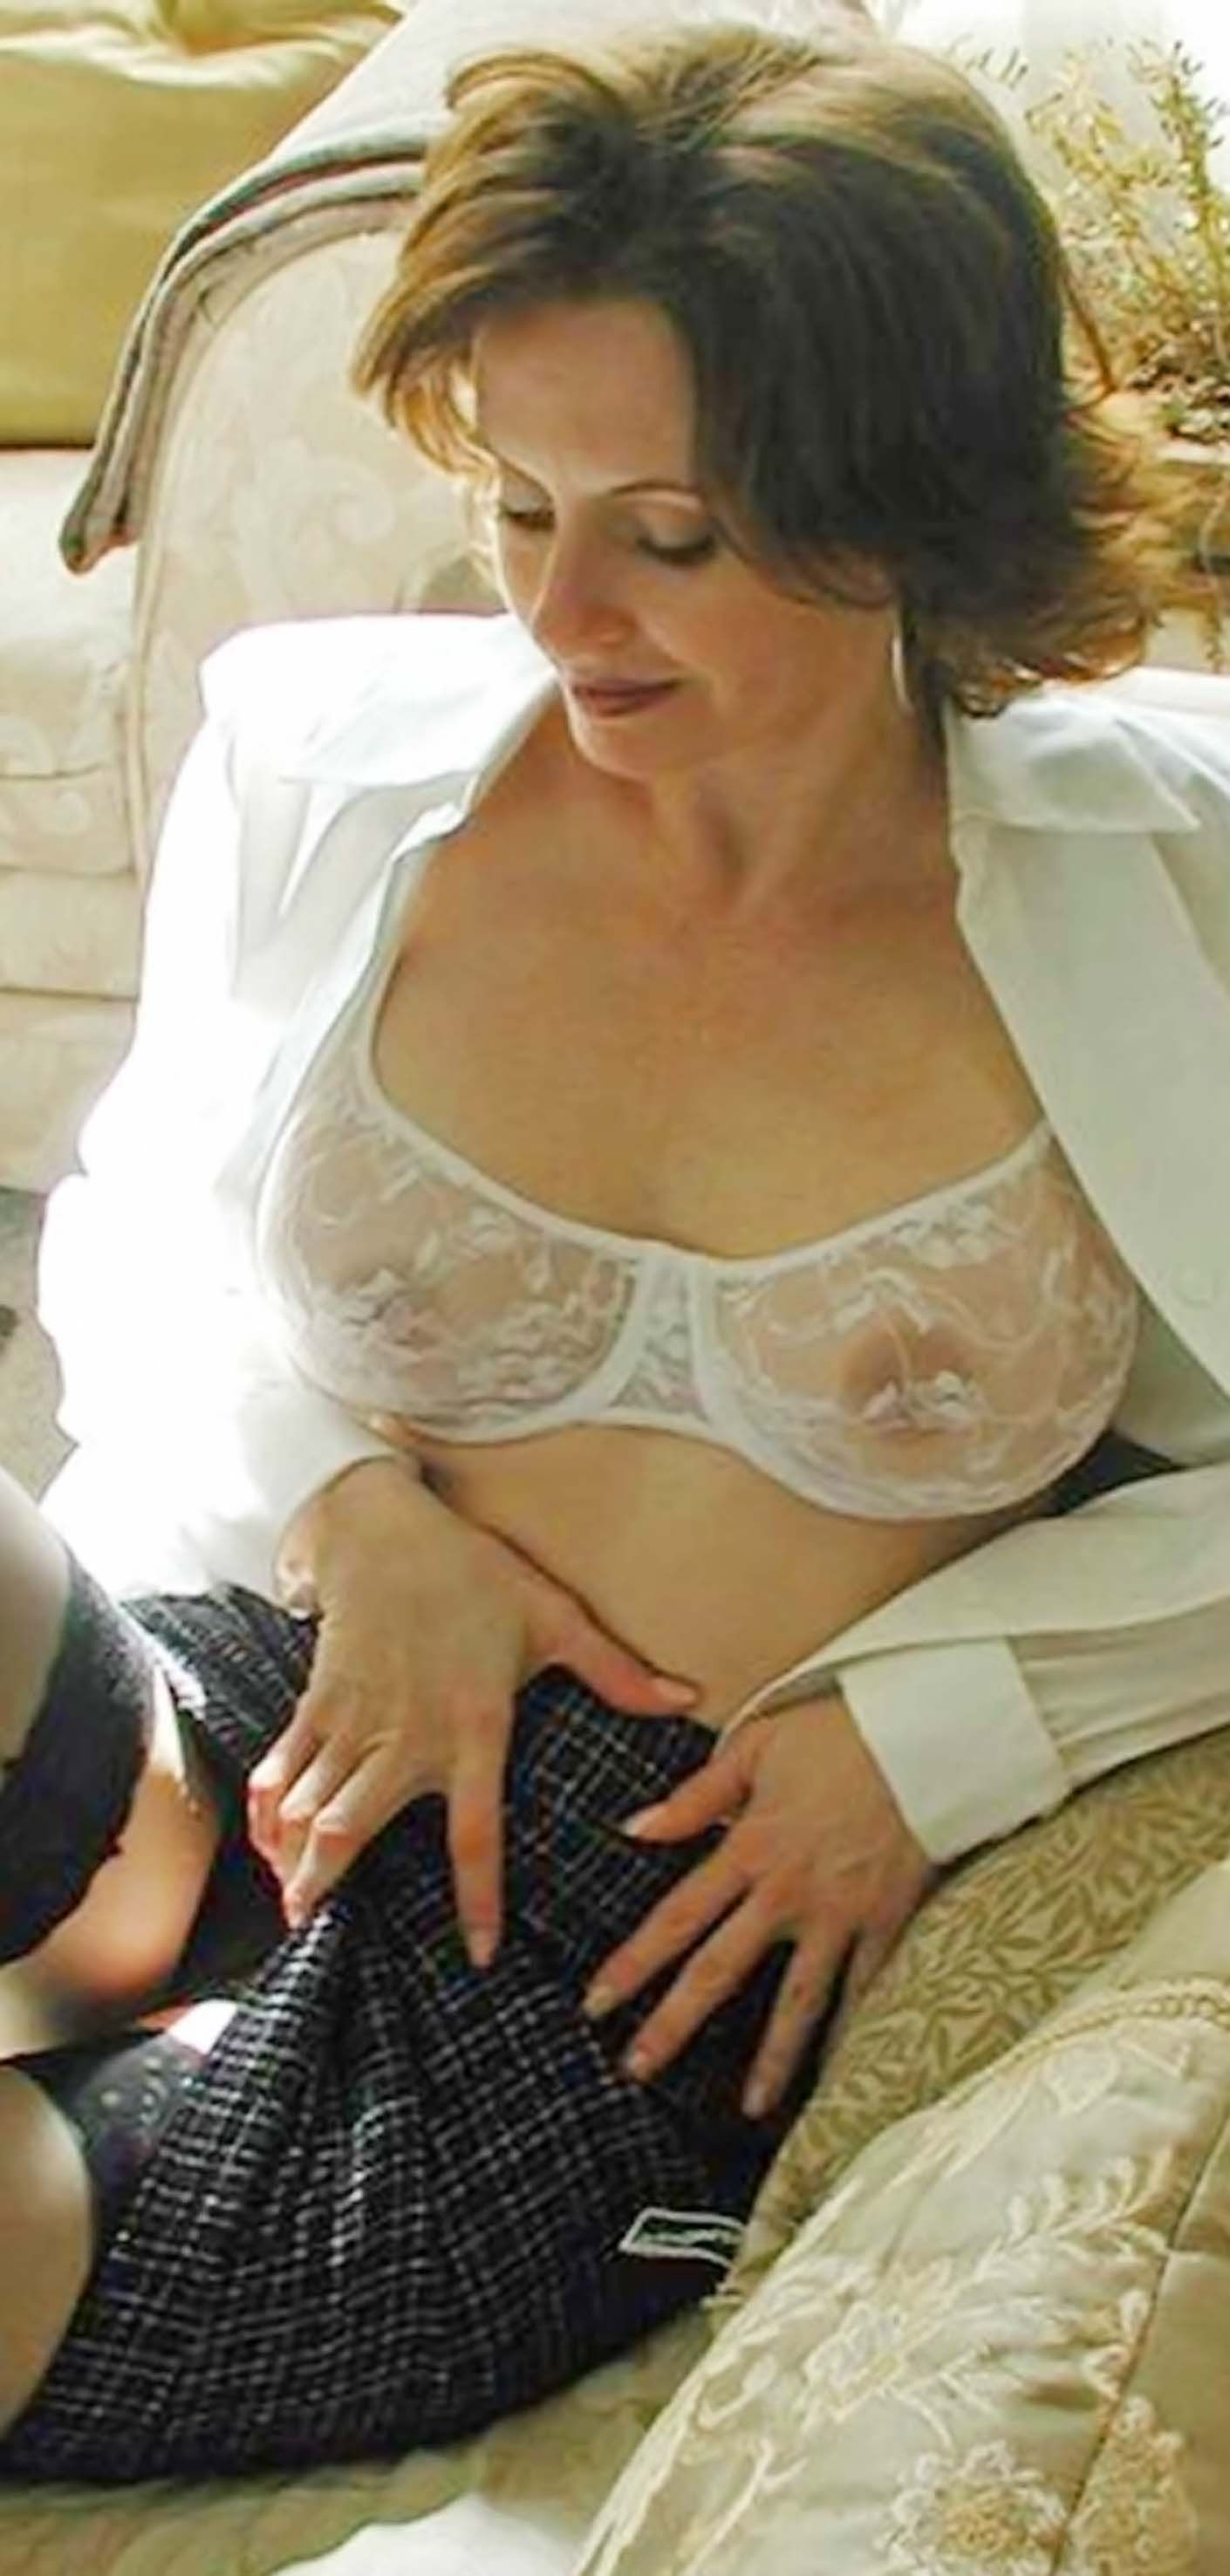 Sheer White Lace Bra And Black Panties Mature Hot